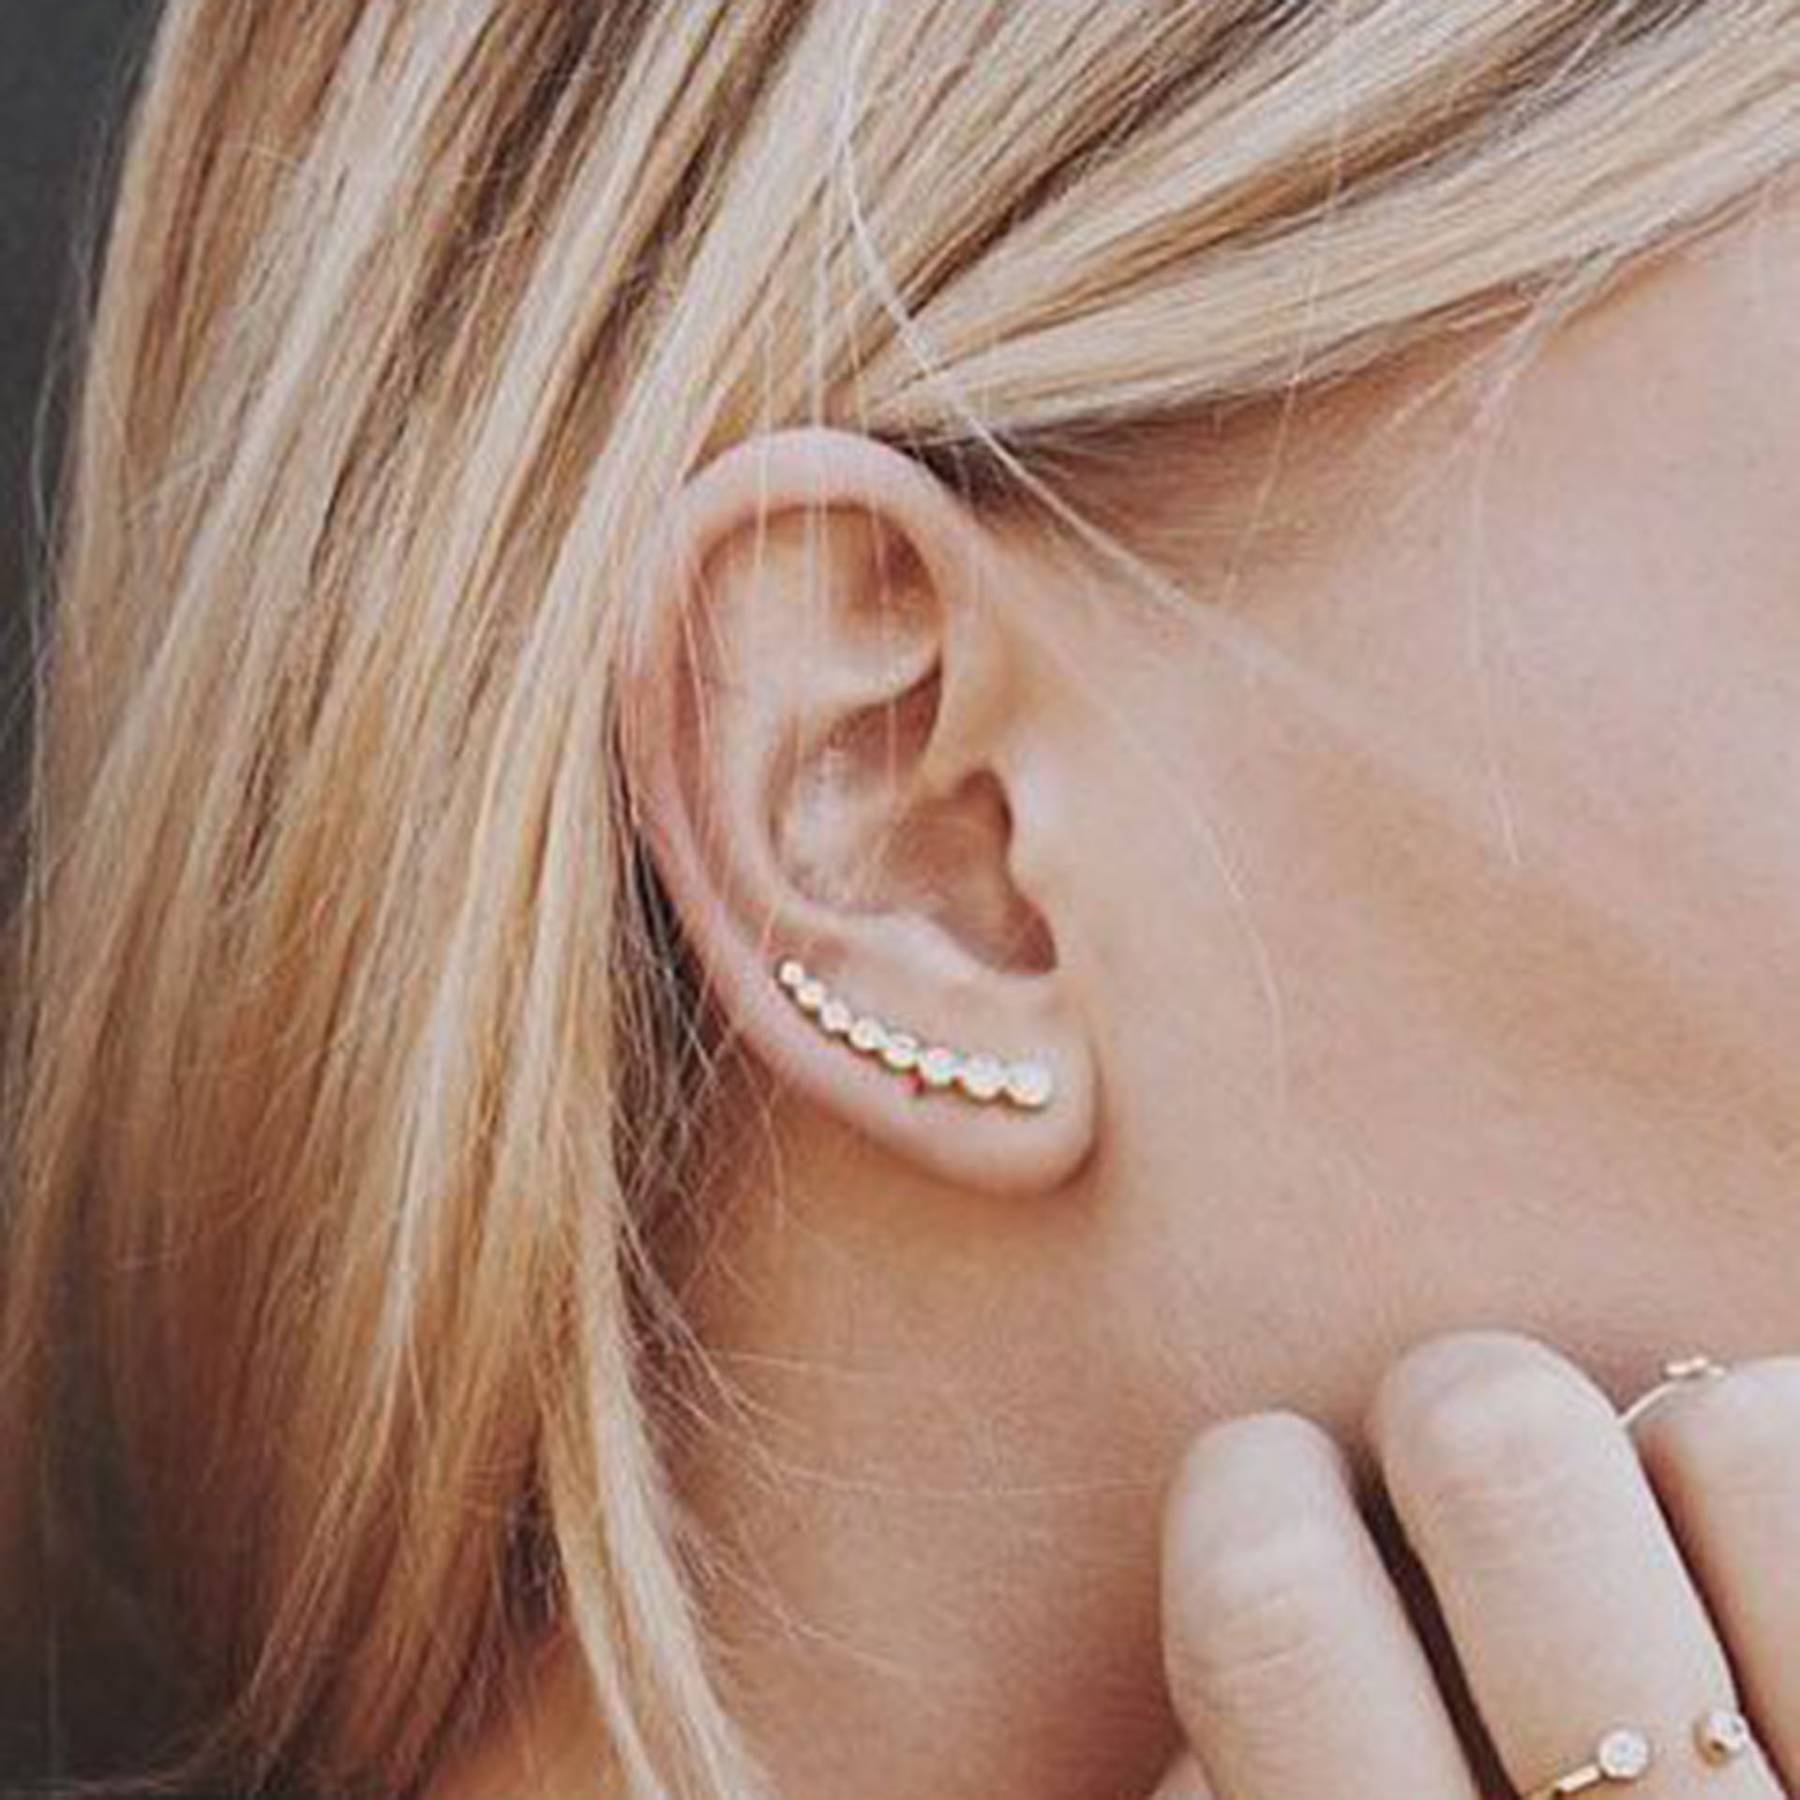 Earring Trends 2019 The Earrings That Will Be Trending This Year